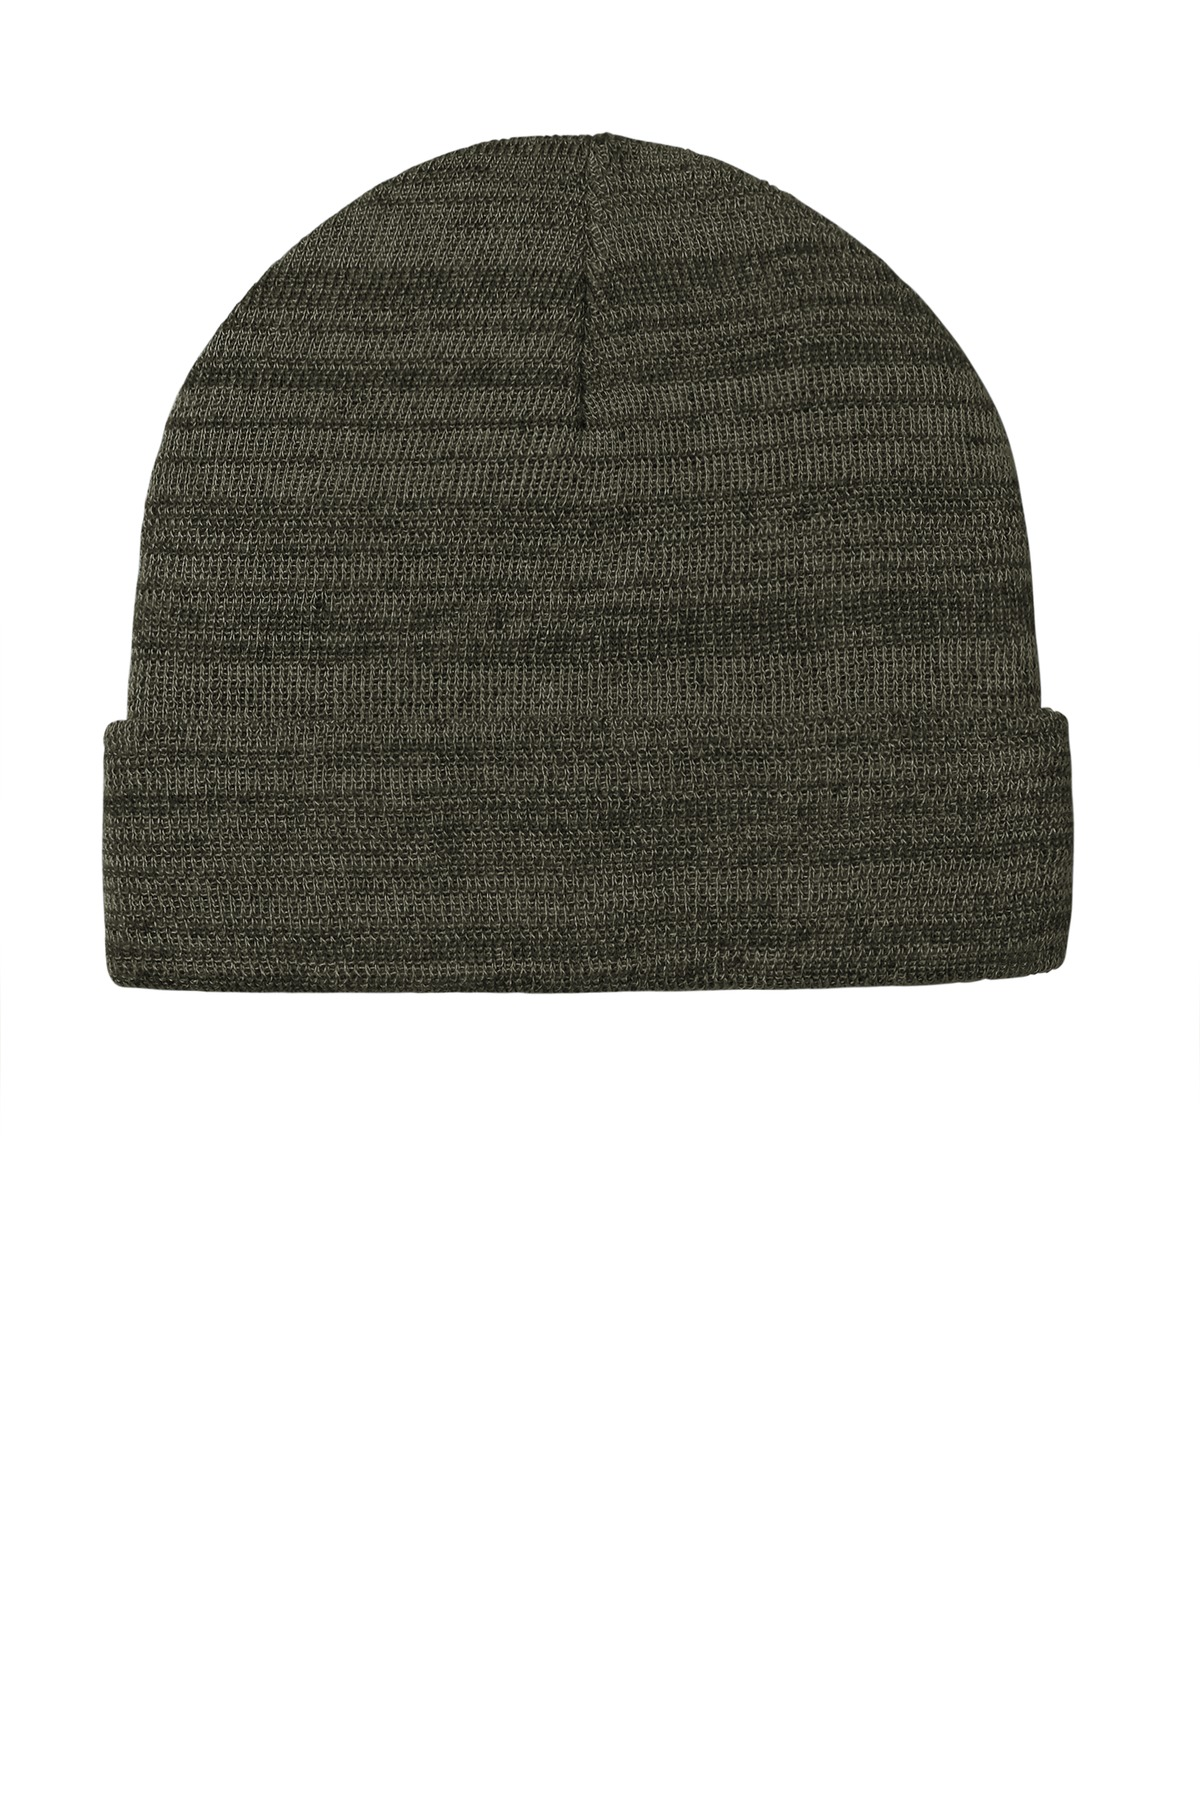 Port Authority  ®  Knit Cuff Beanie C939 - Olive Green Heather